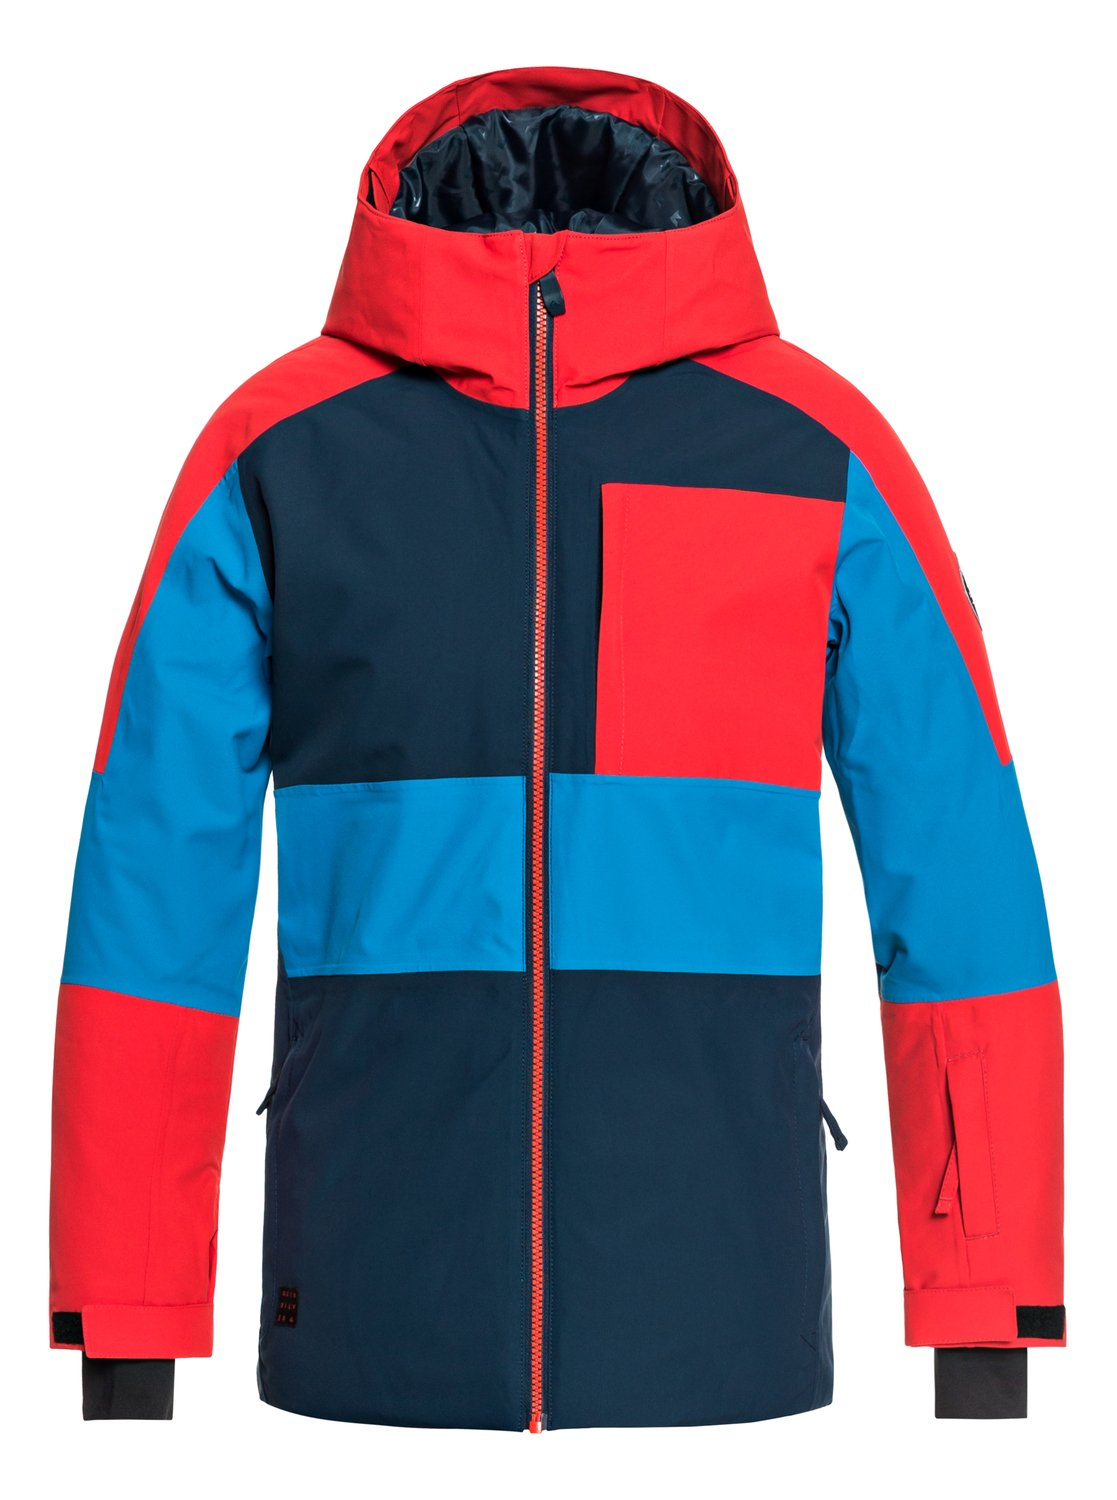 2adcc531c Sycamore - Snow Jacket for Boys 8-16